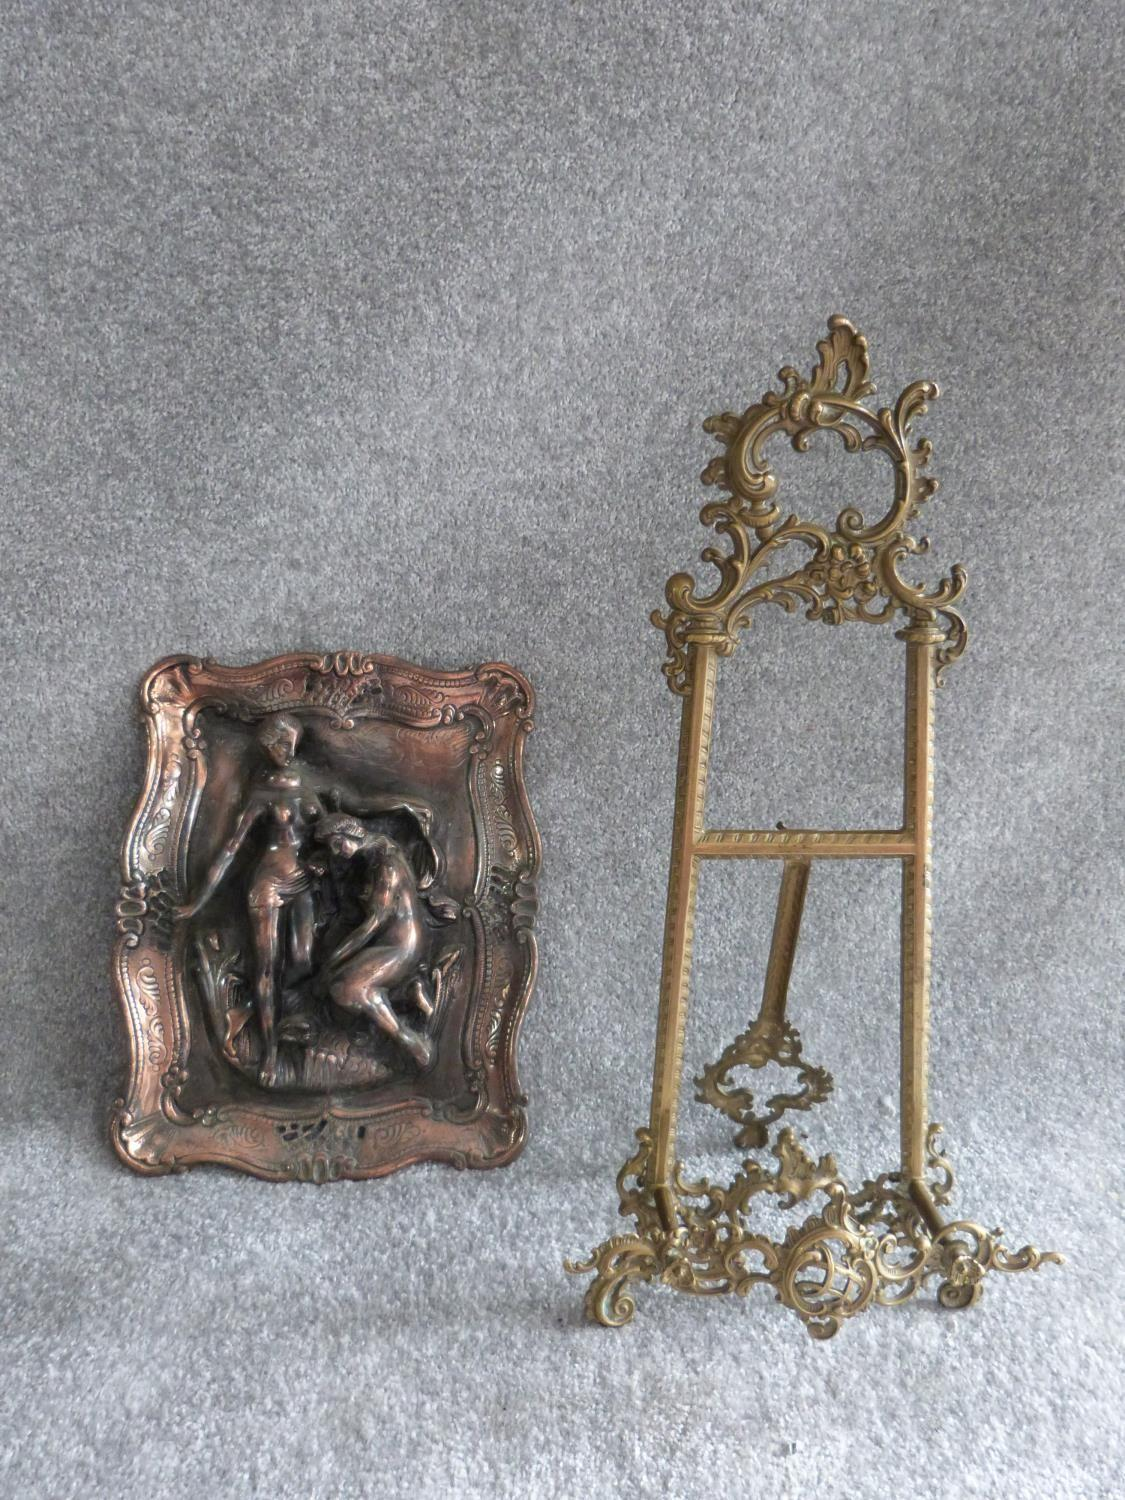 Lot 27 - A copper relief moulded wall plaque with male and female figures and a vintage brass openwork easel.